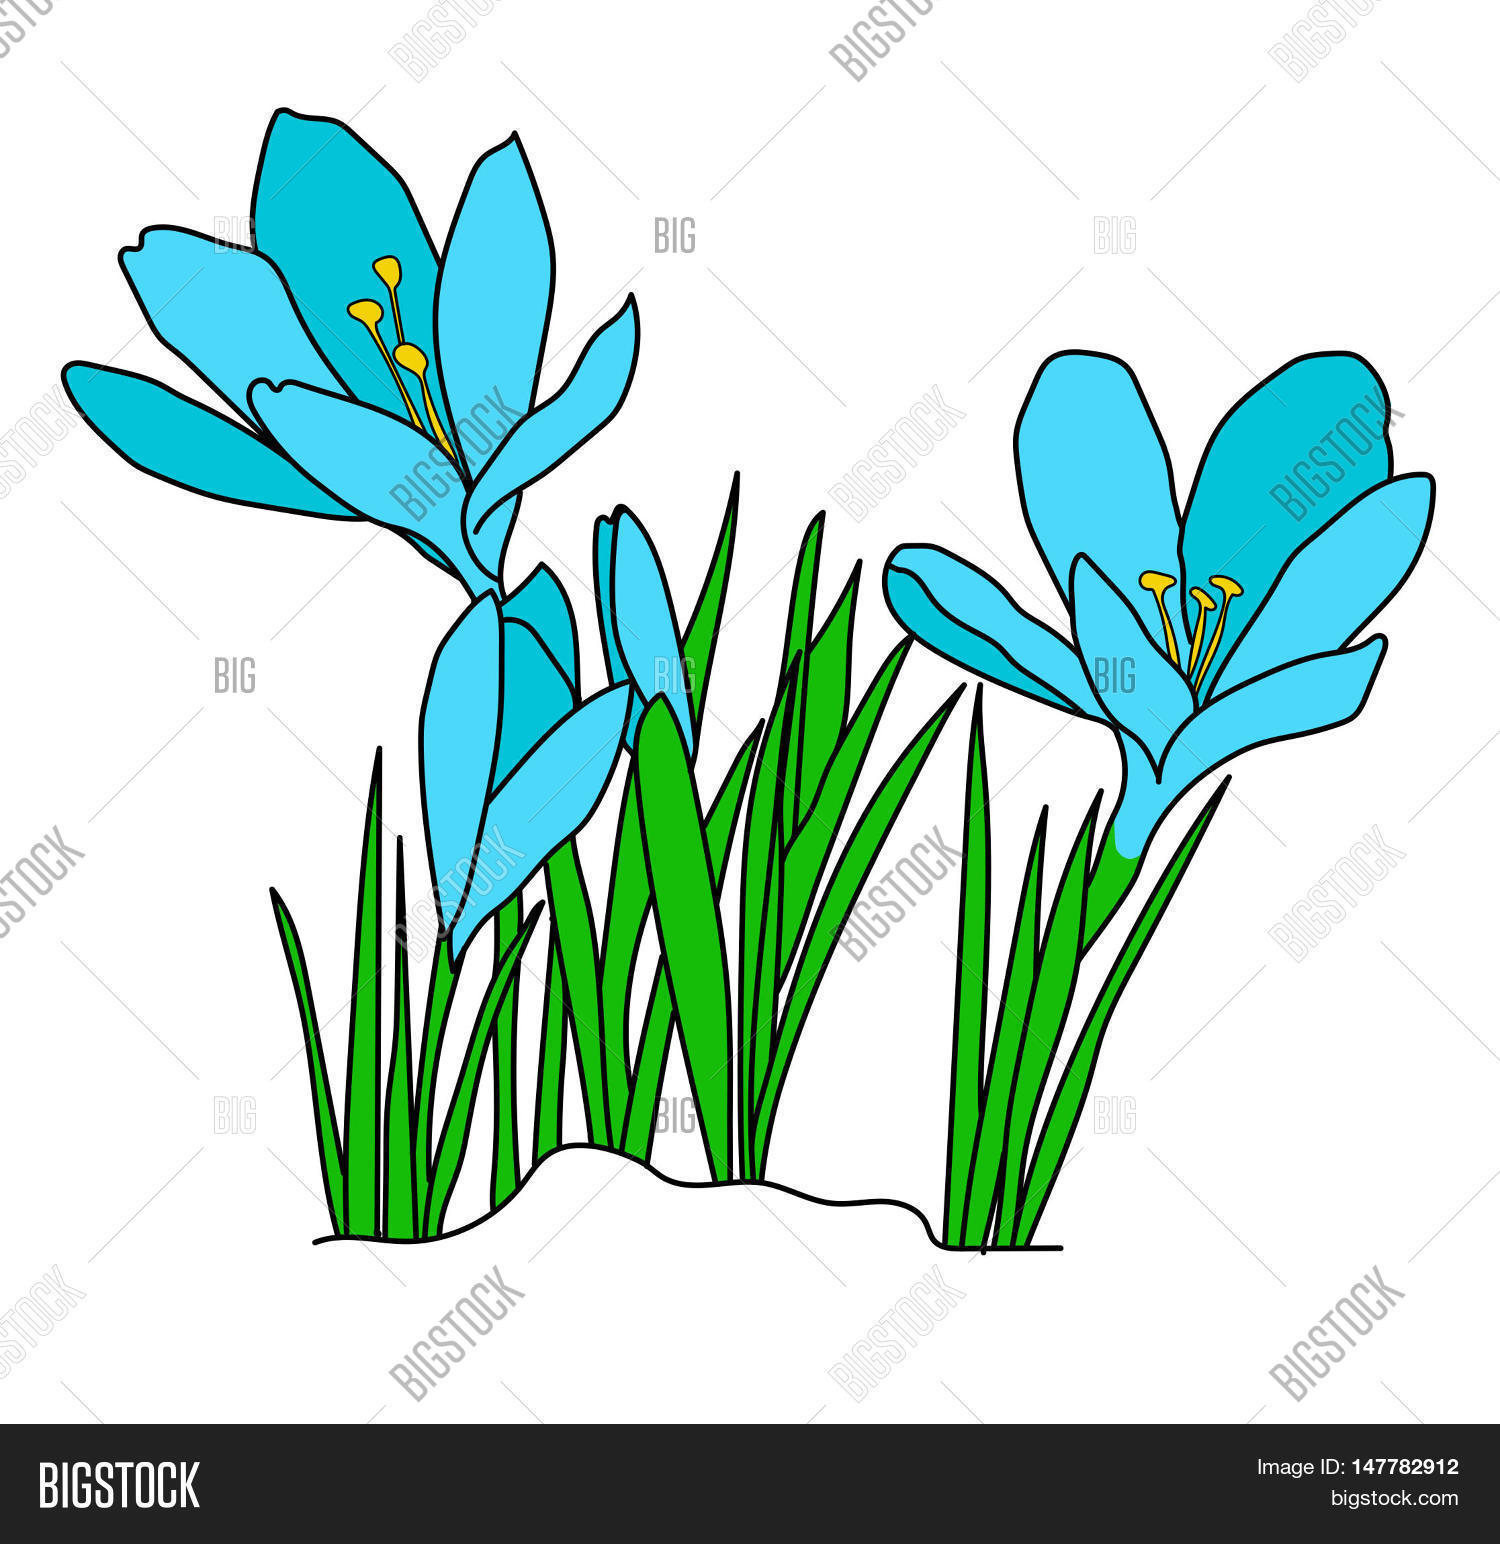 Crocuses Flowers Image Photo Free Trial Bigstock